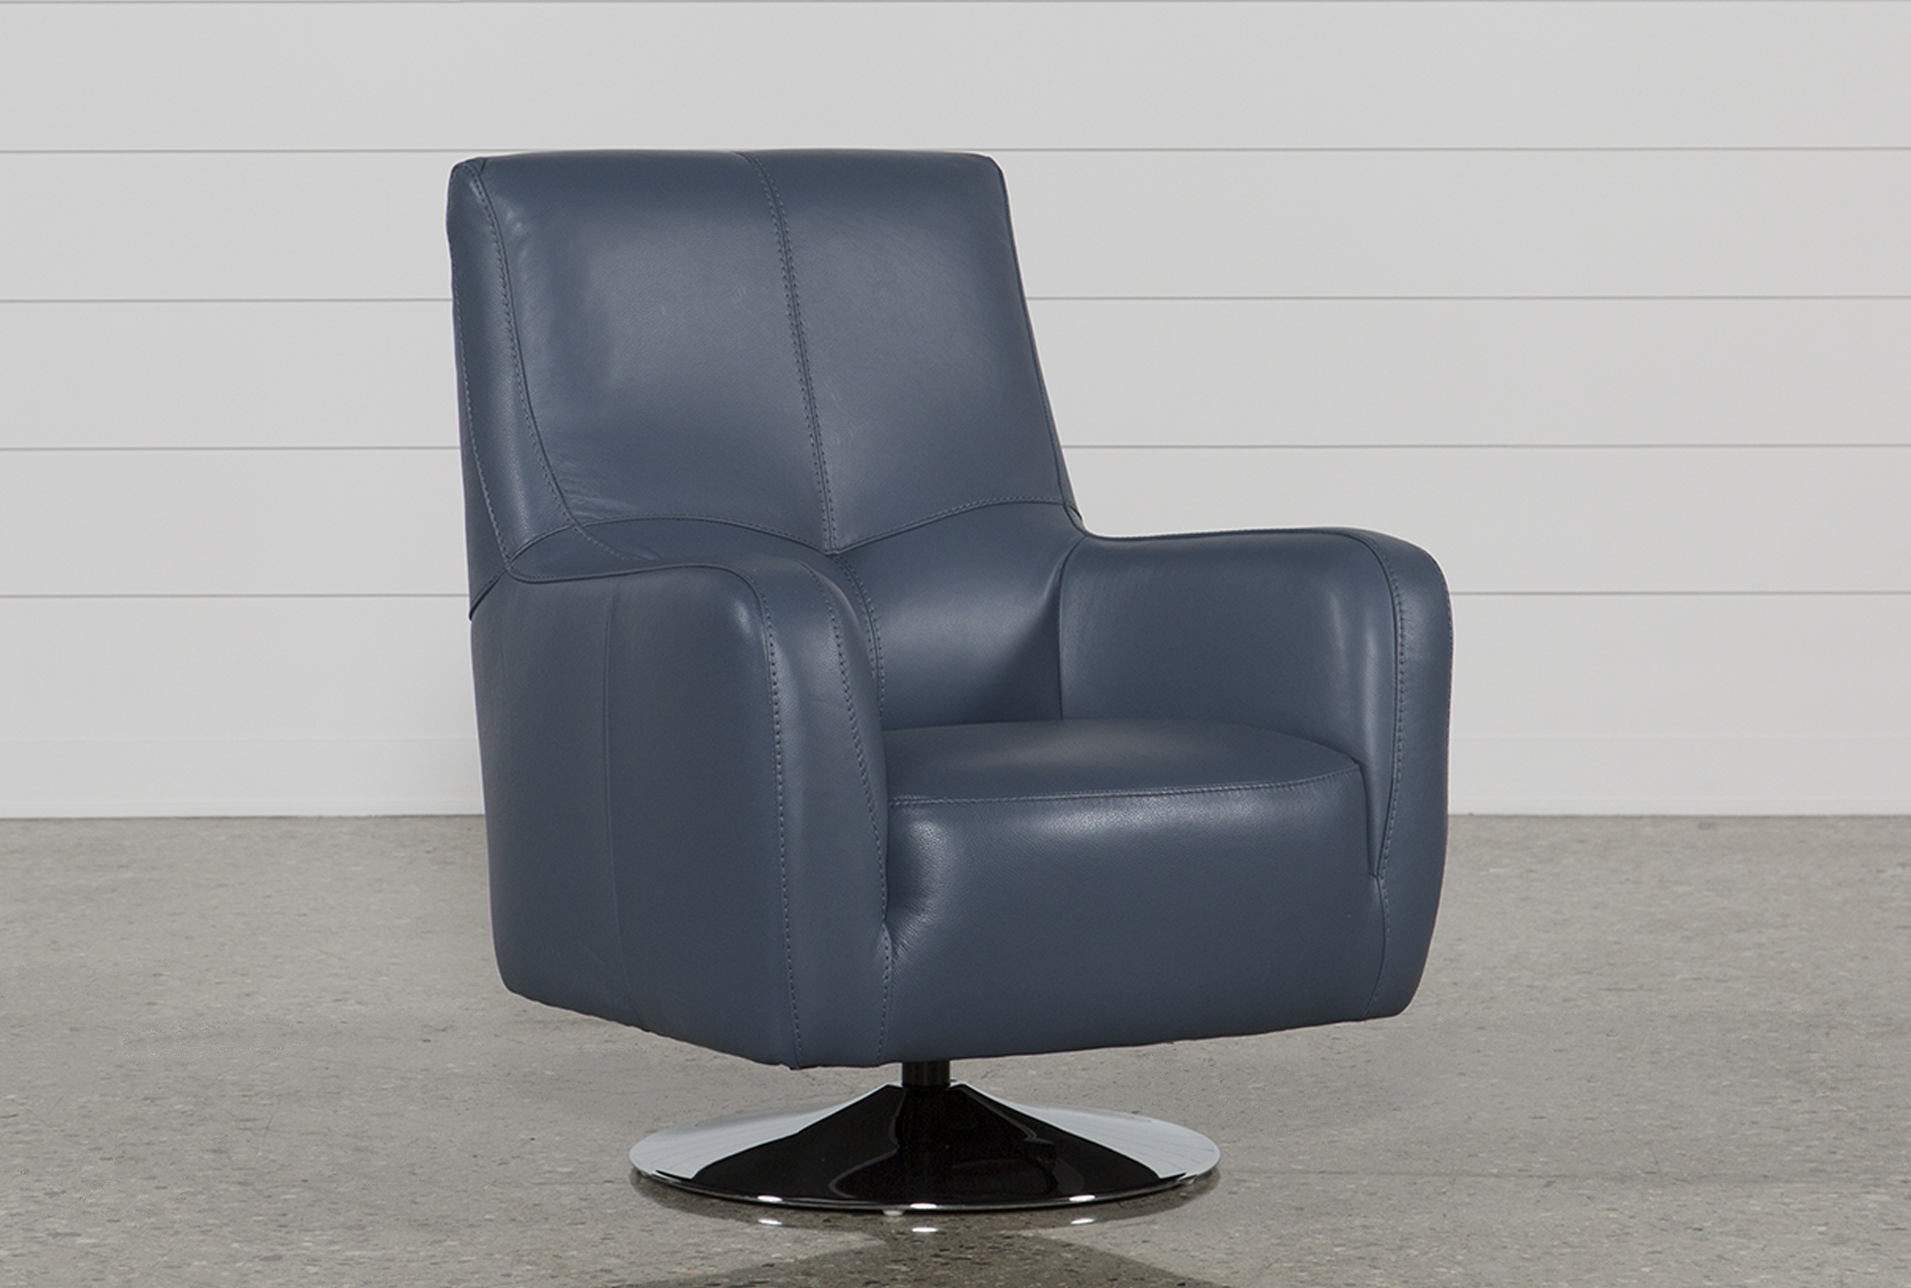 designer chairs for living room decorating pictures modern spaces display product reviews kawai leather swivel chair